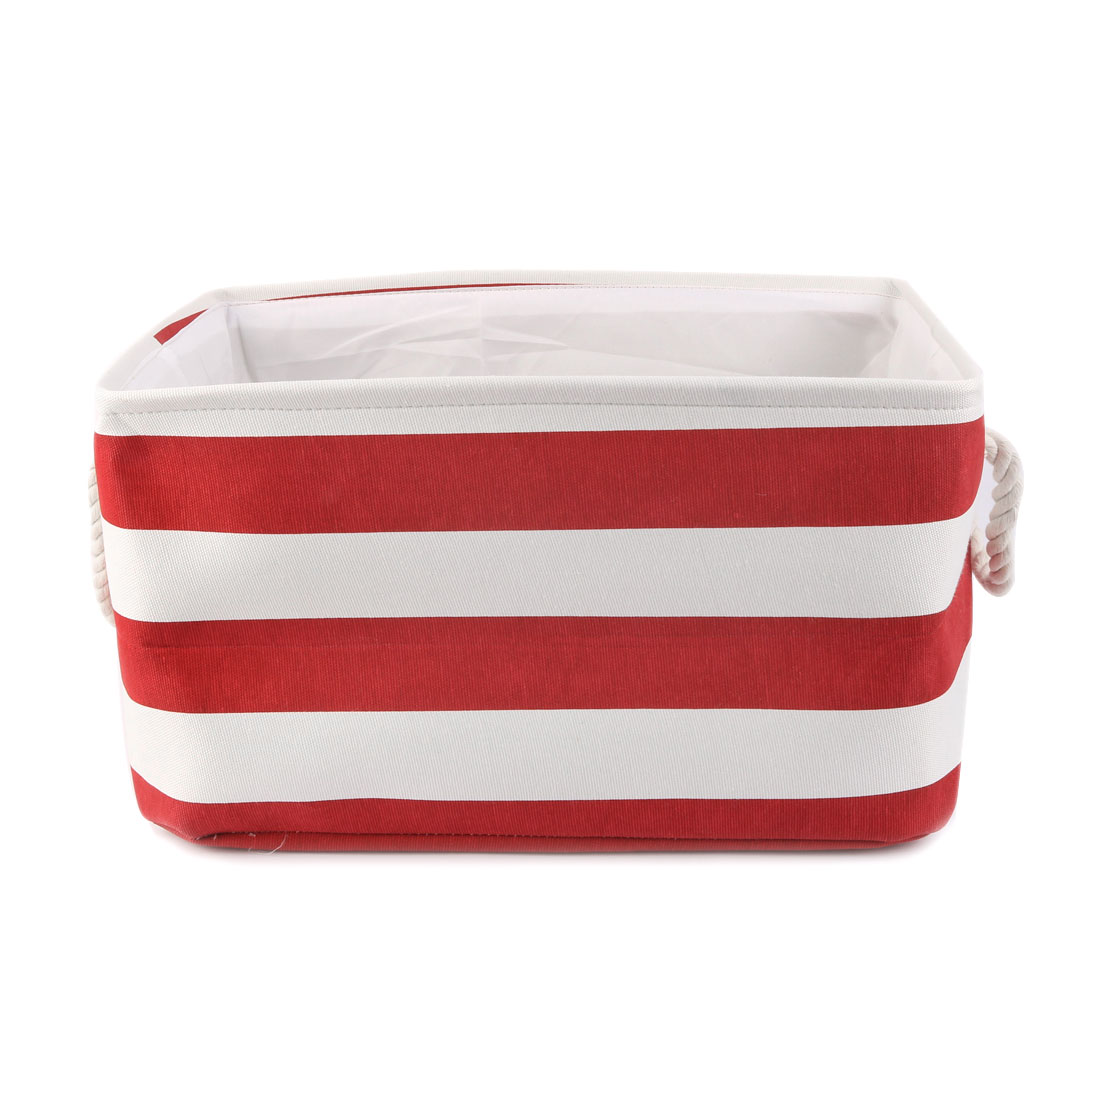 Household Fabric Storage Bin Basket Closet Clothes Box Container Organizer Red